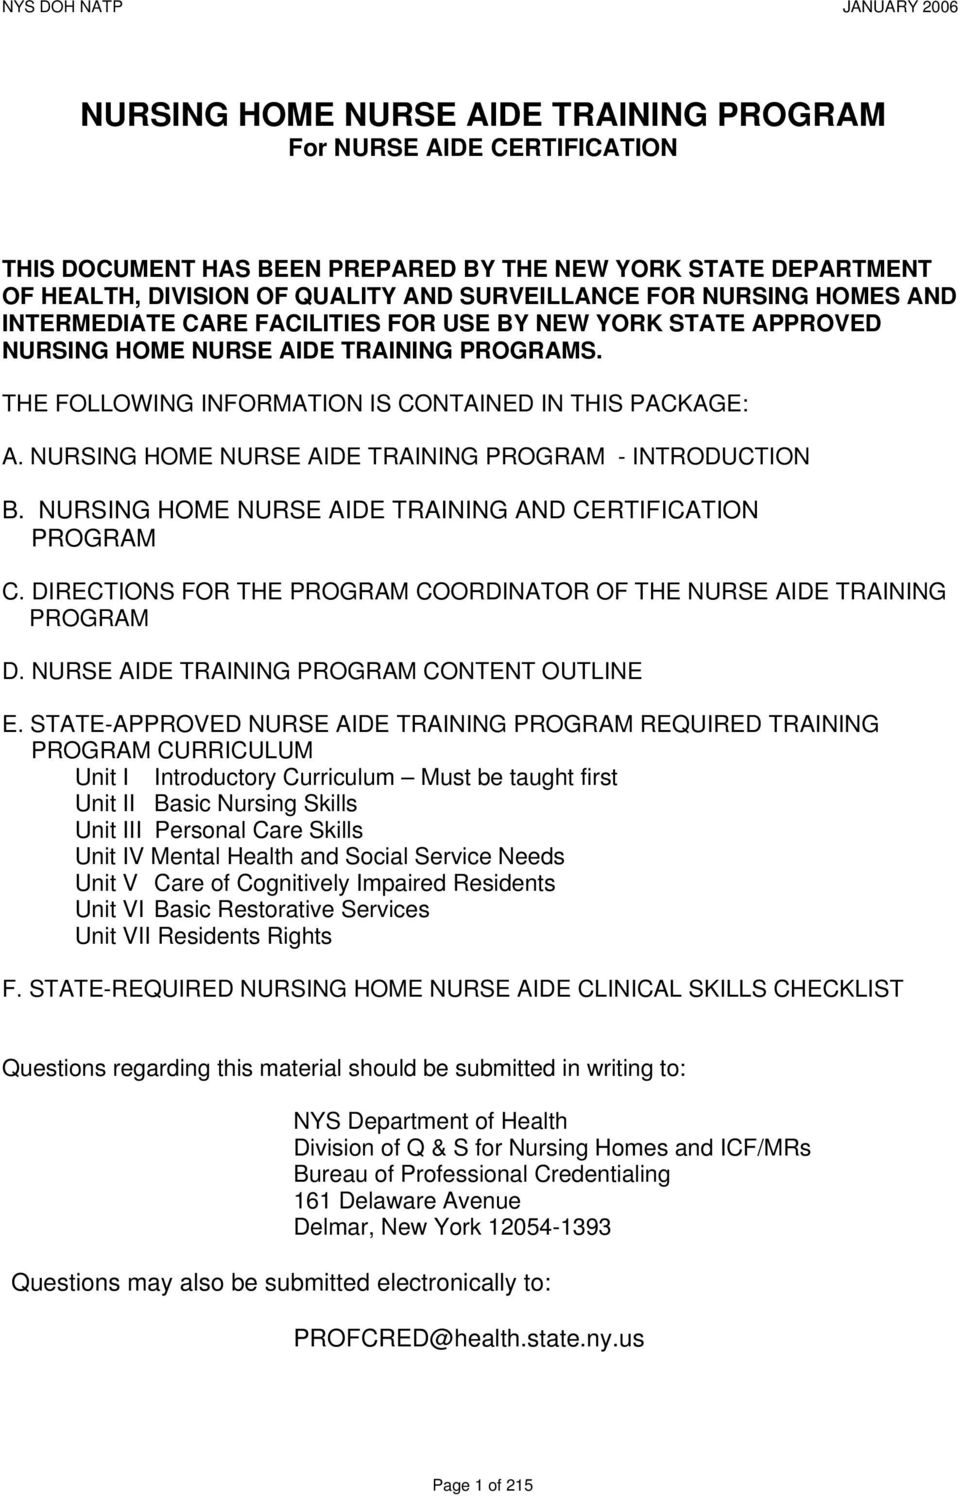 NURSING HOME NURSE AIDE TRAINING PROGRAM - INTRODUCTION B. NURSING HOME NURSE AIDE TRAINING AND CERTIFICATION PROGRAM C. DIRECTIONS FOR THE PROGRAM COORDINATOR OF THE NURSE AIDE TRAINING PROGRAM D.